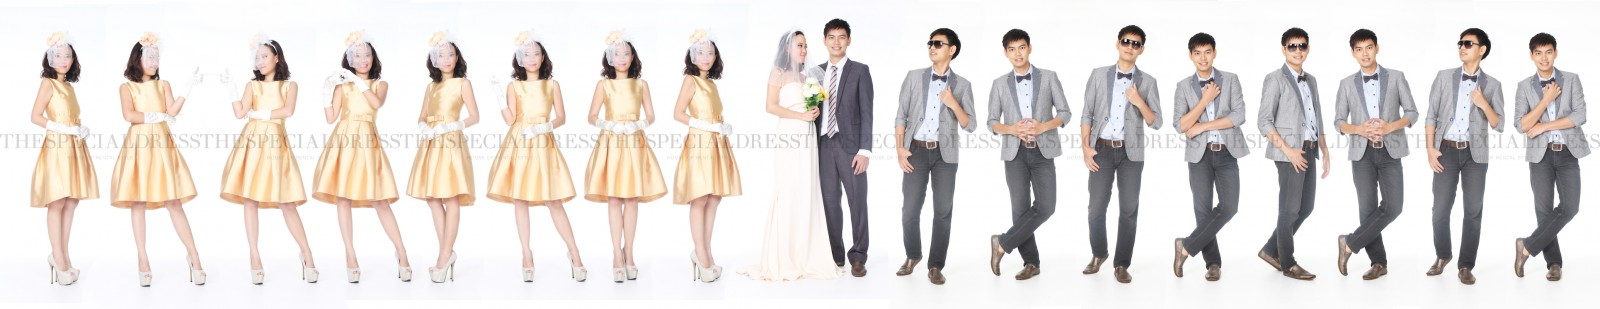 SD0316&SUIT0404_Bride-LD0283